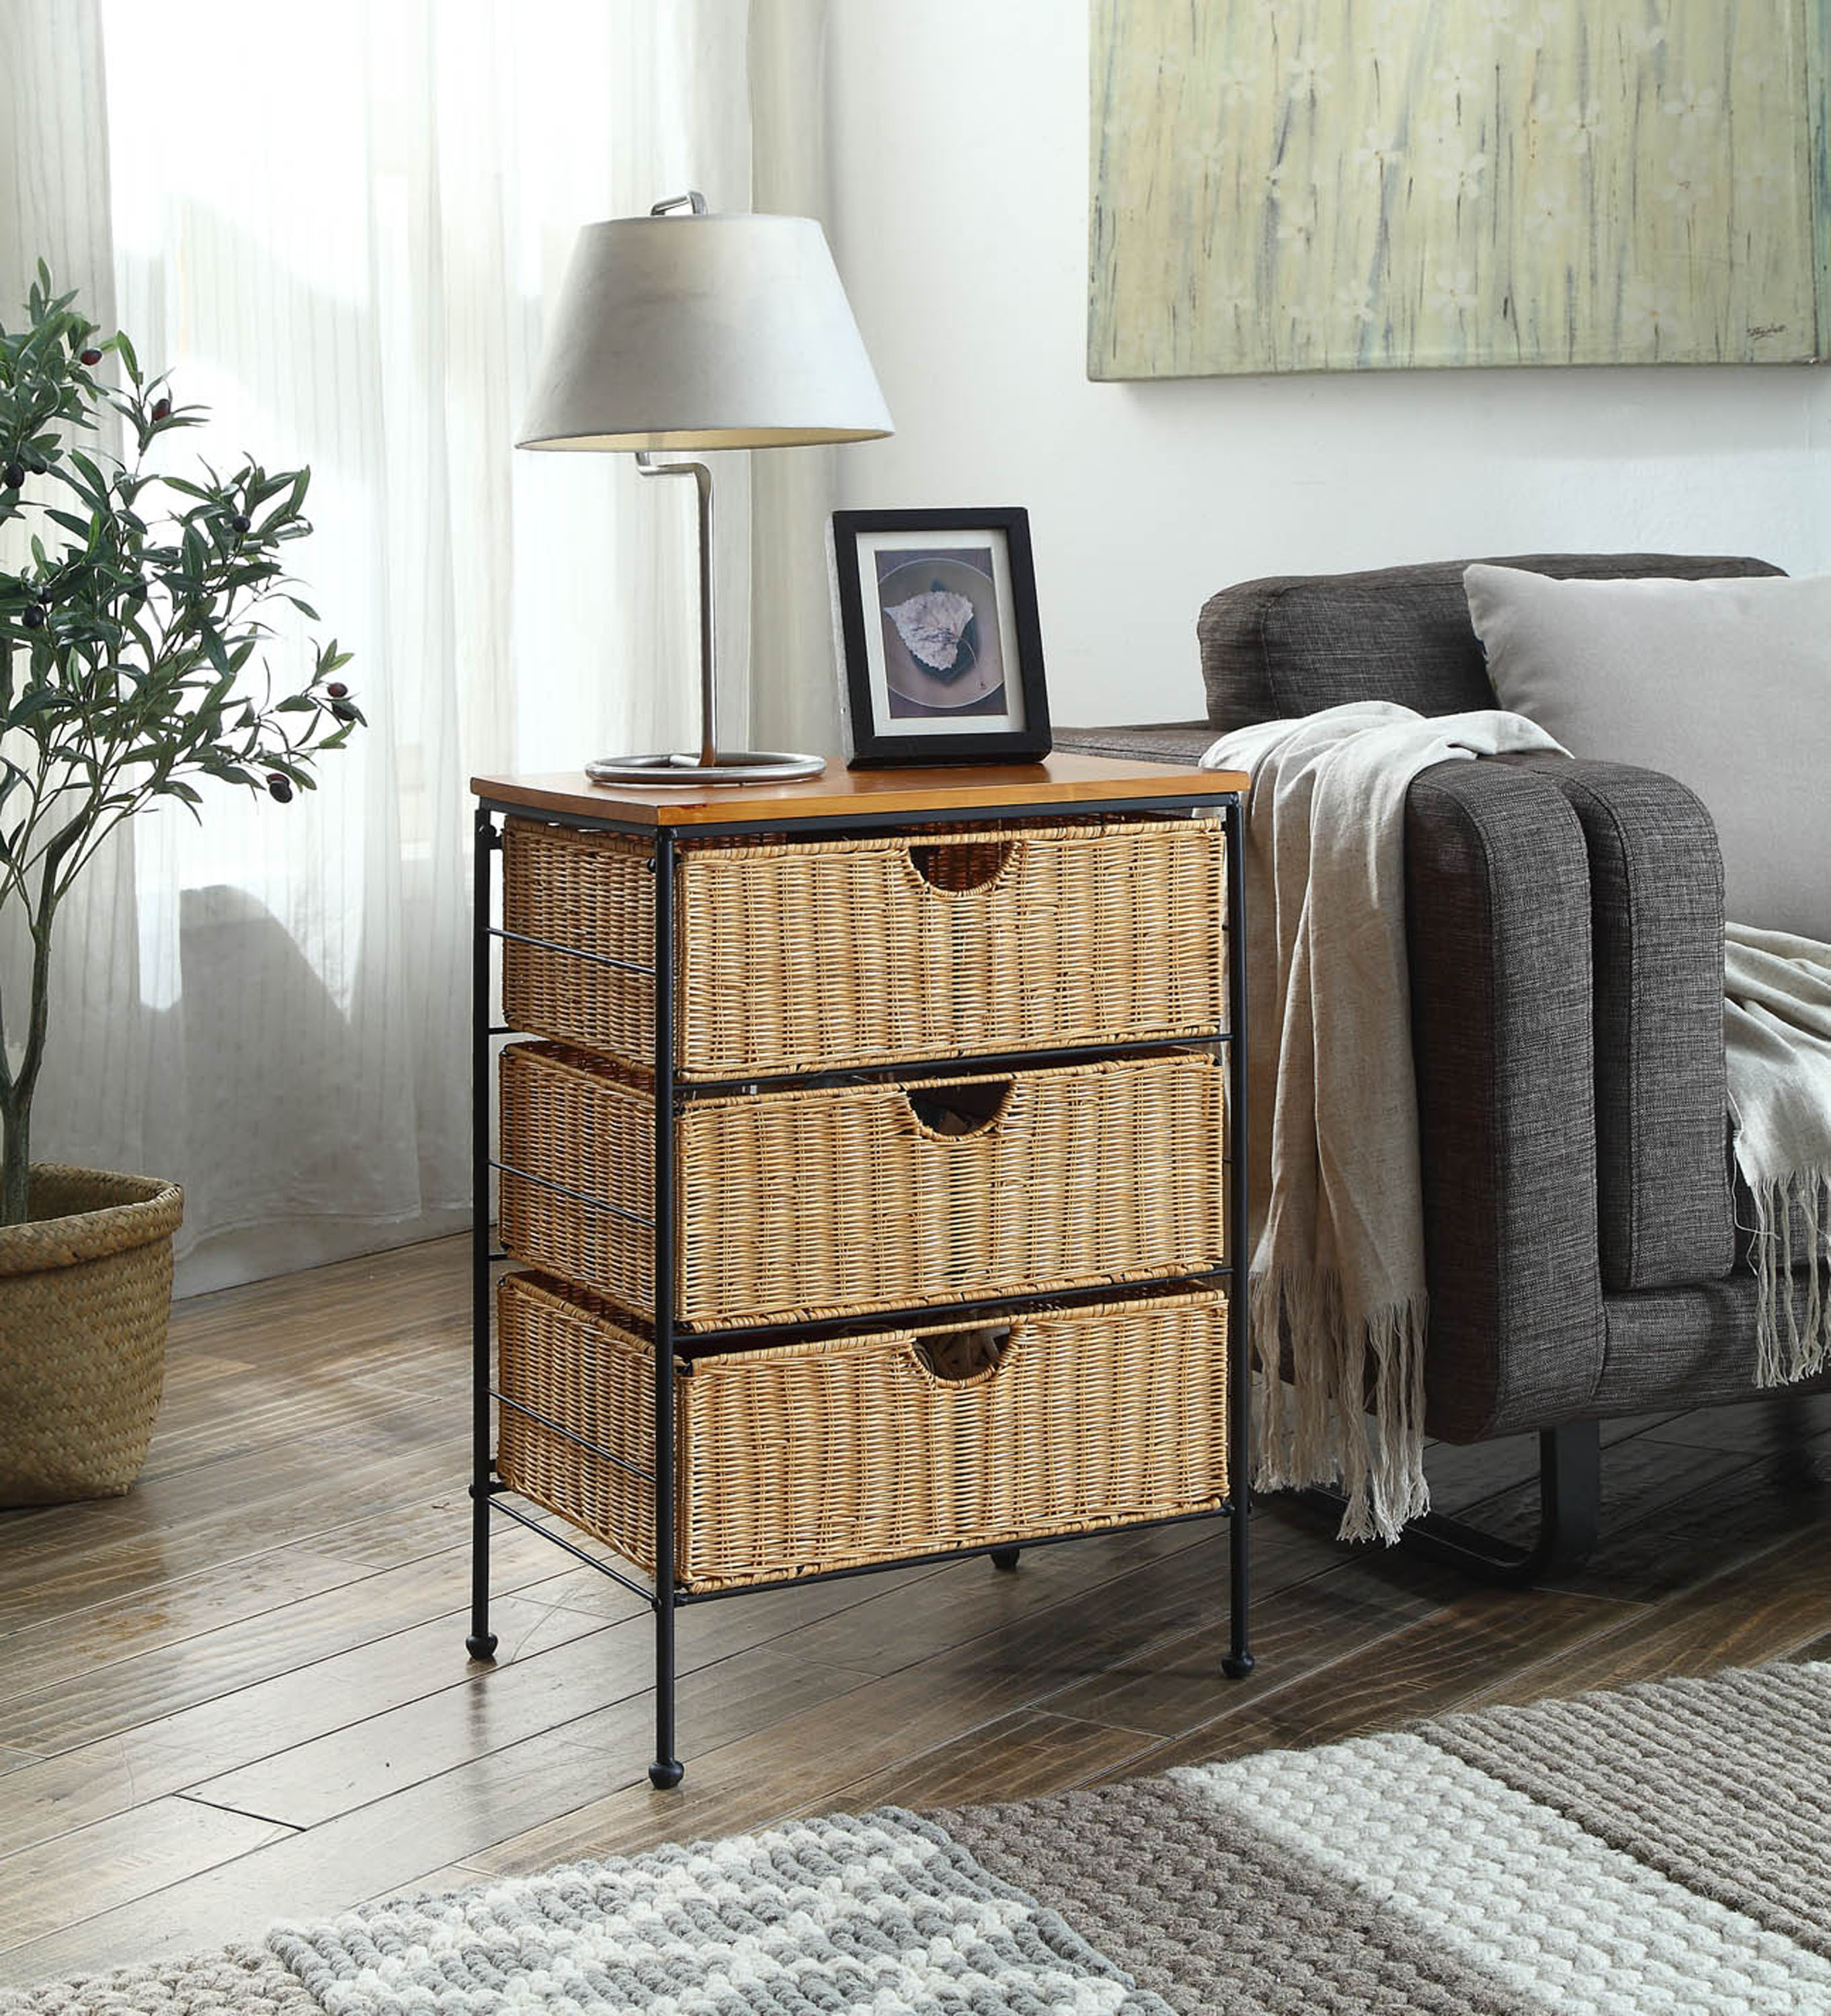 4D Concepts 263069 3 Drawer Wicker Stand - Wicker/Metal